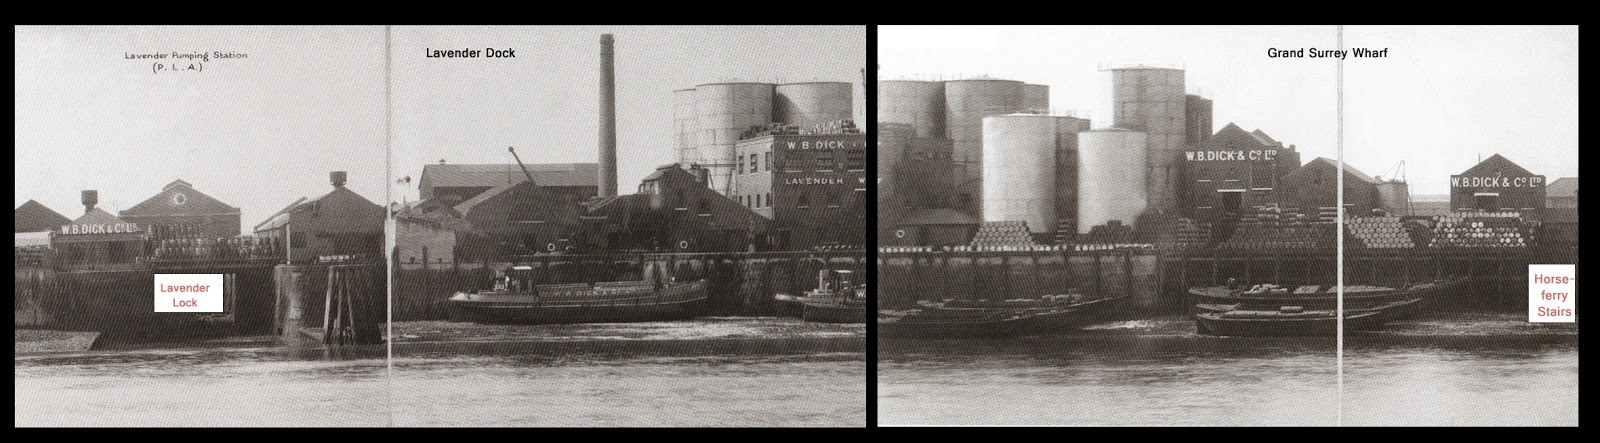 Lavender Wharf in 1937, when it was the premises of W.B. Dick and Co.jpg